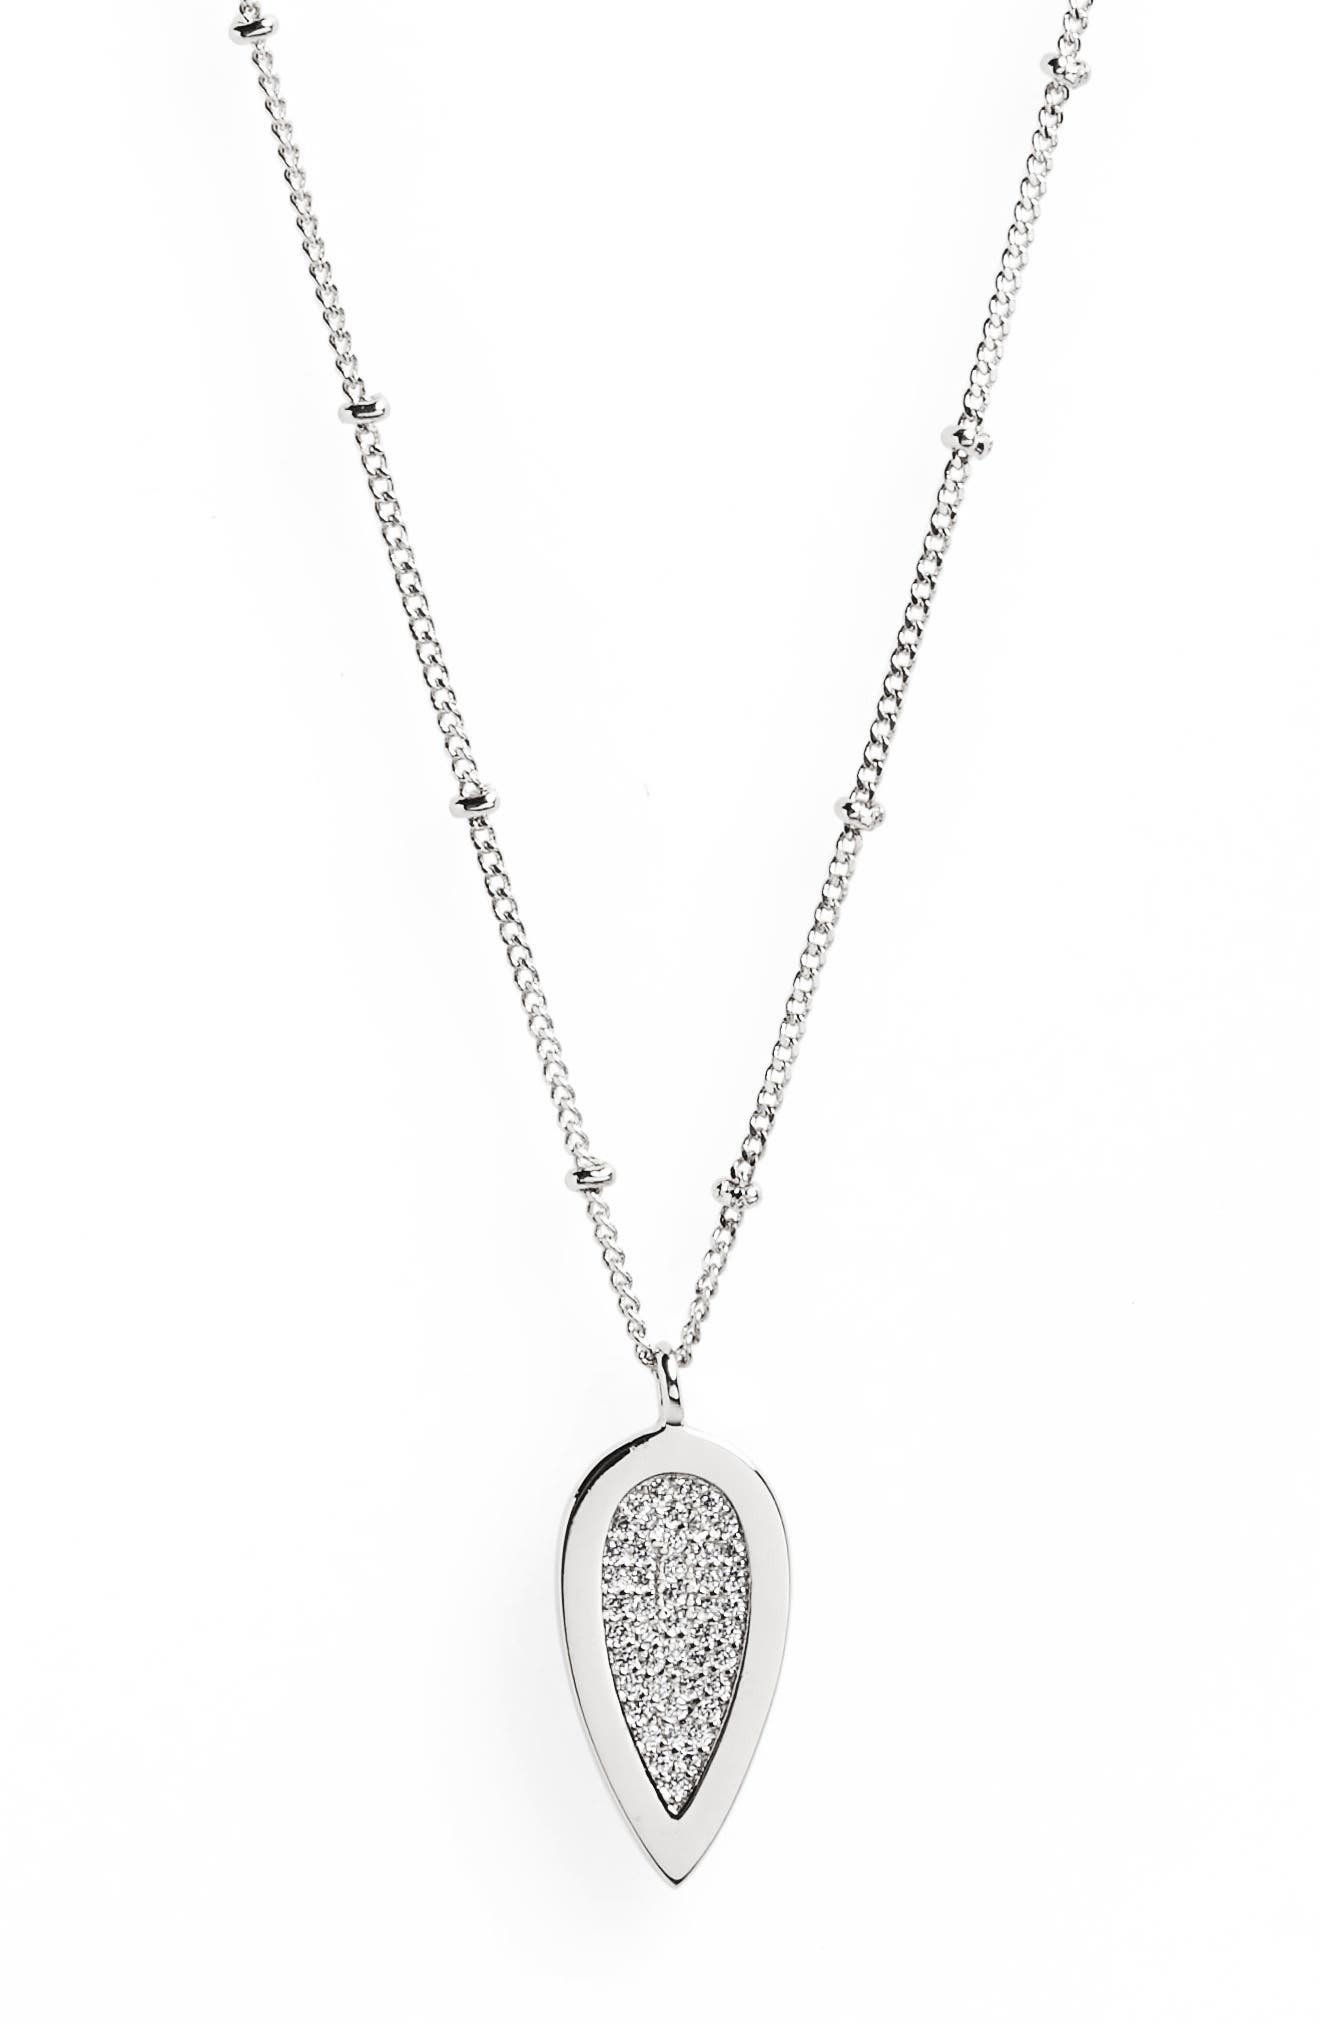 Main Image - Melanie Auld Teardrop Pendant Necklace